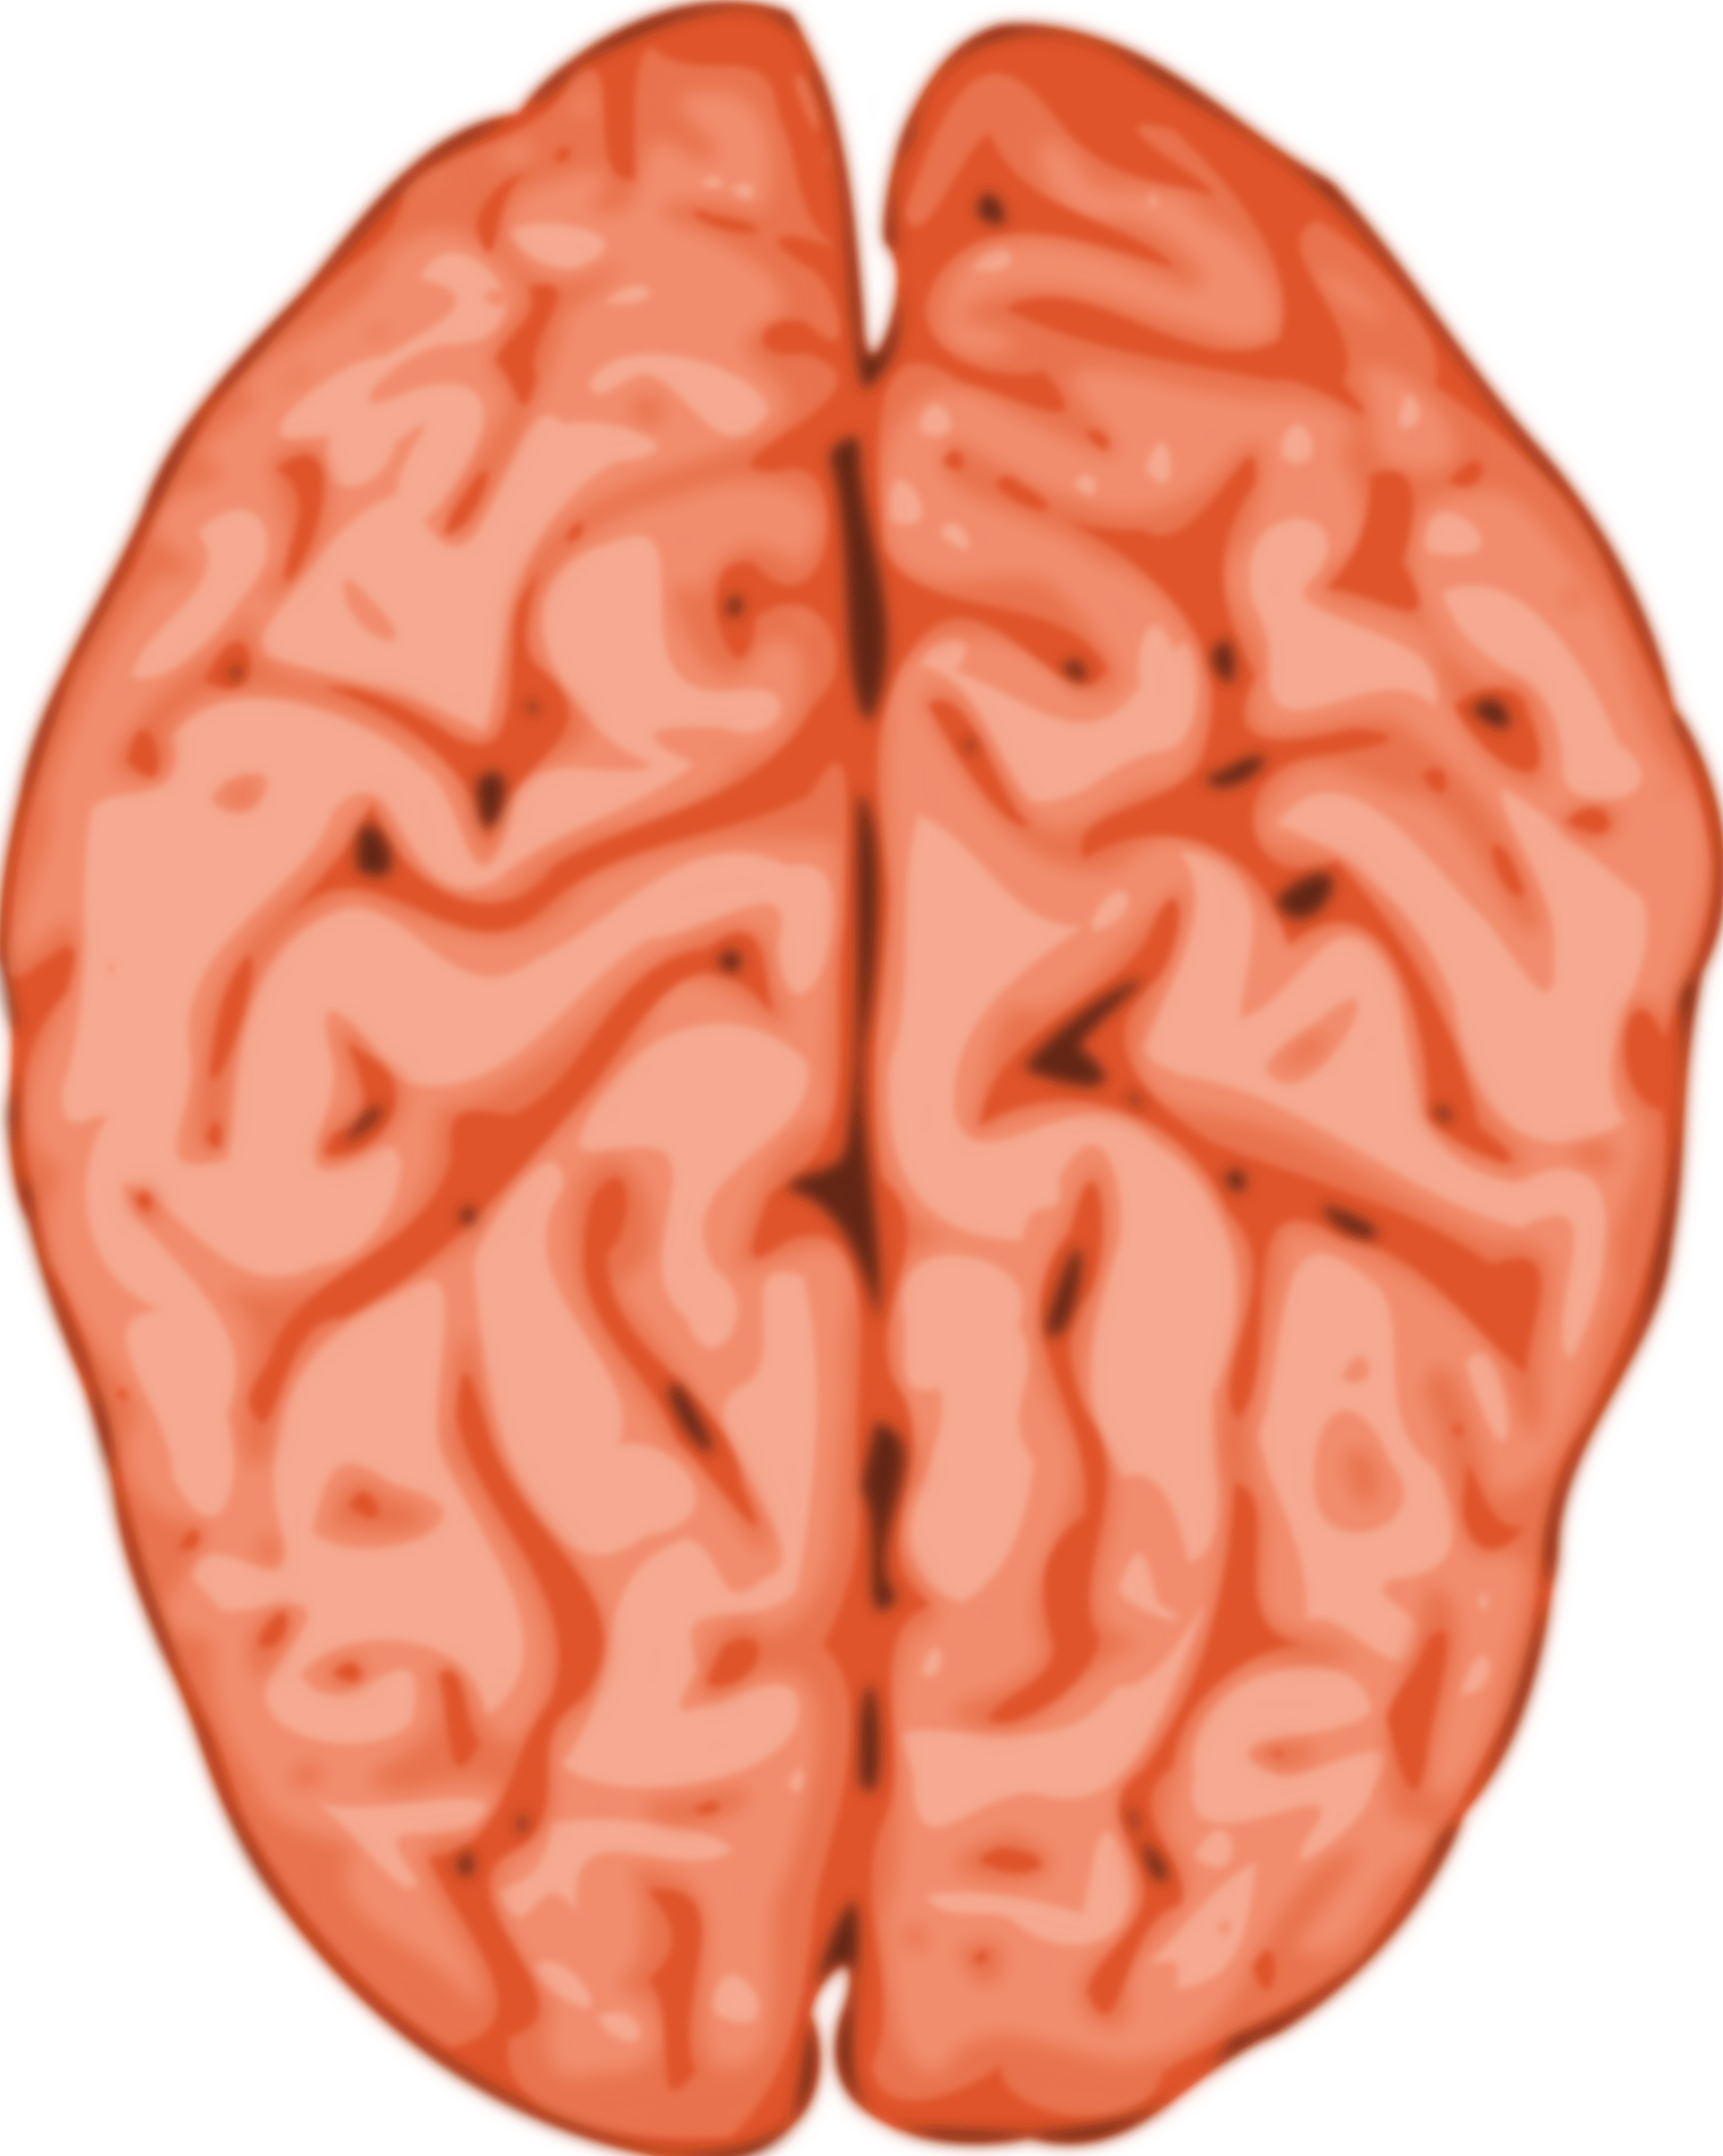 brain by yves_guillou